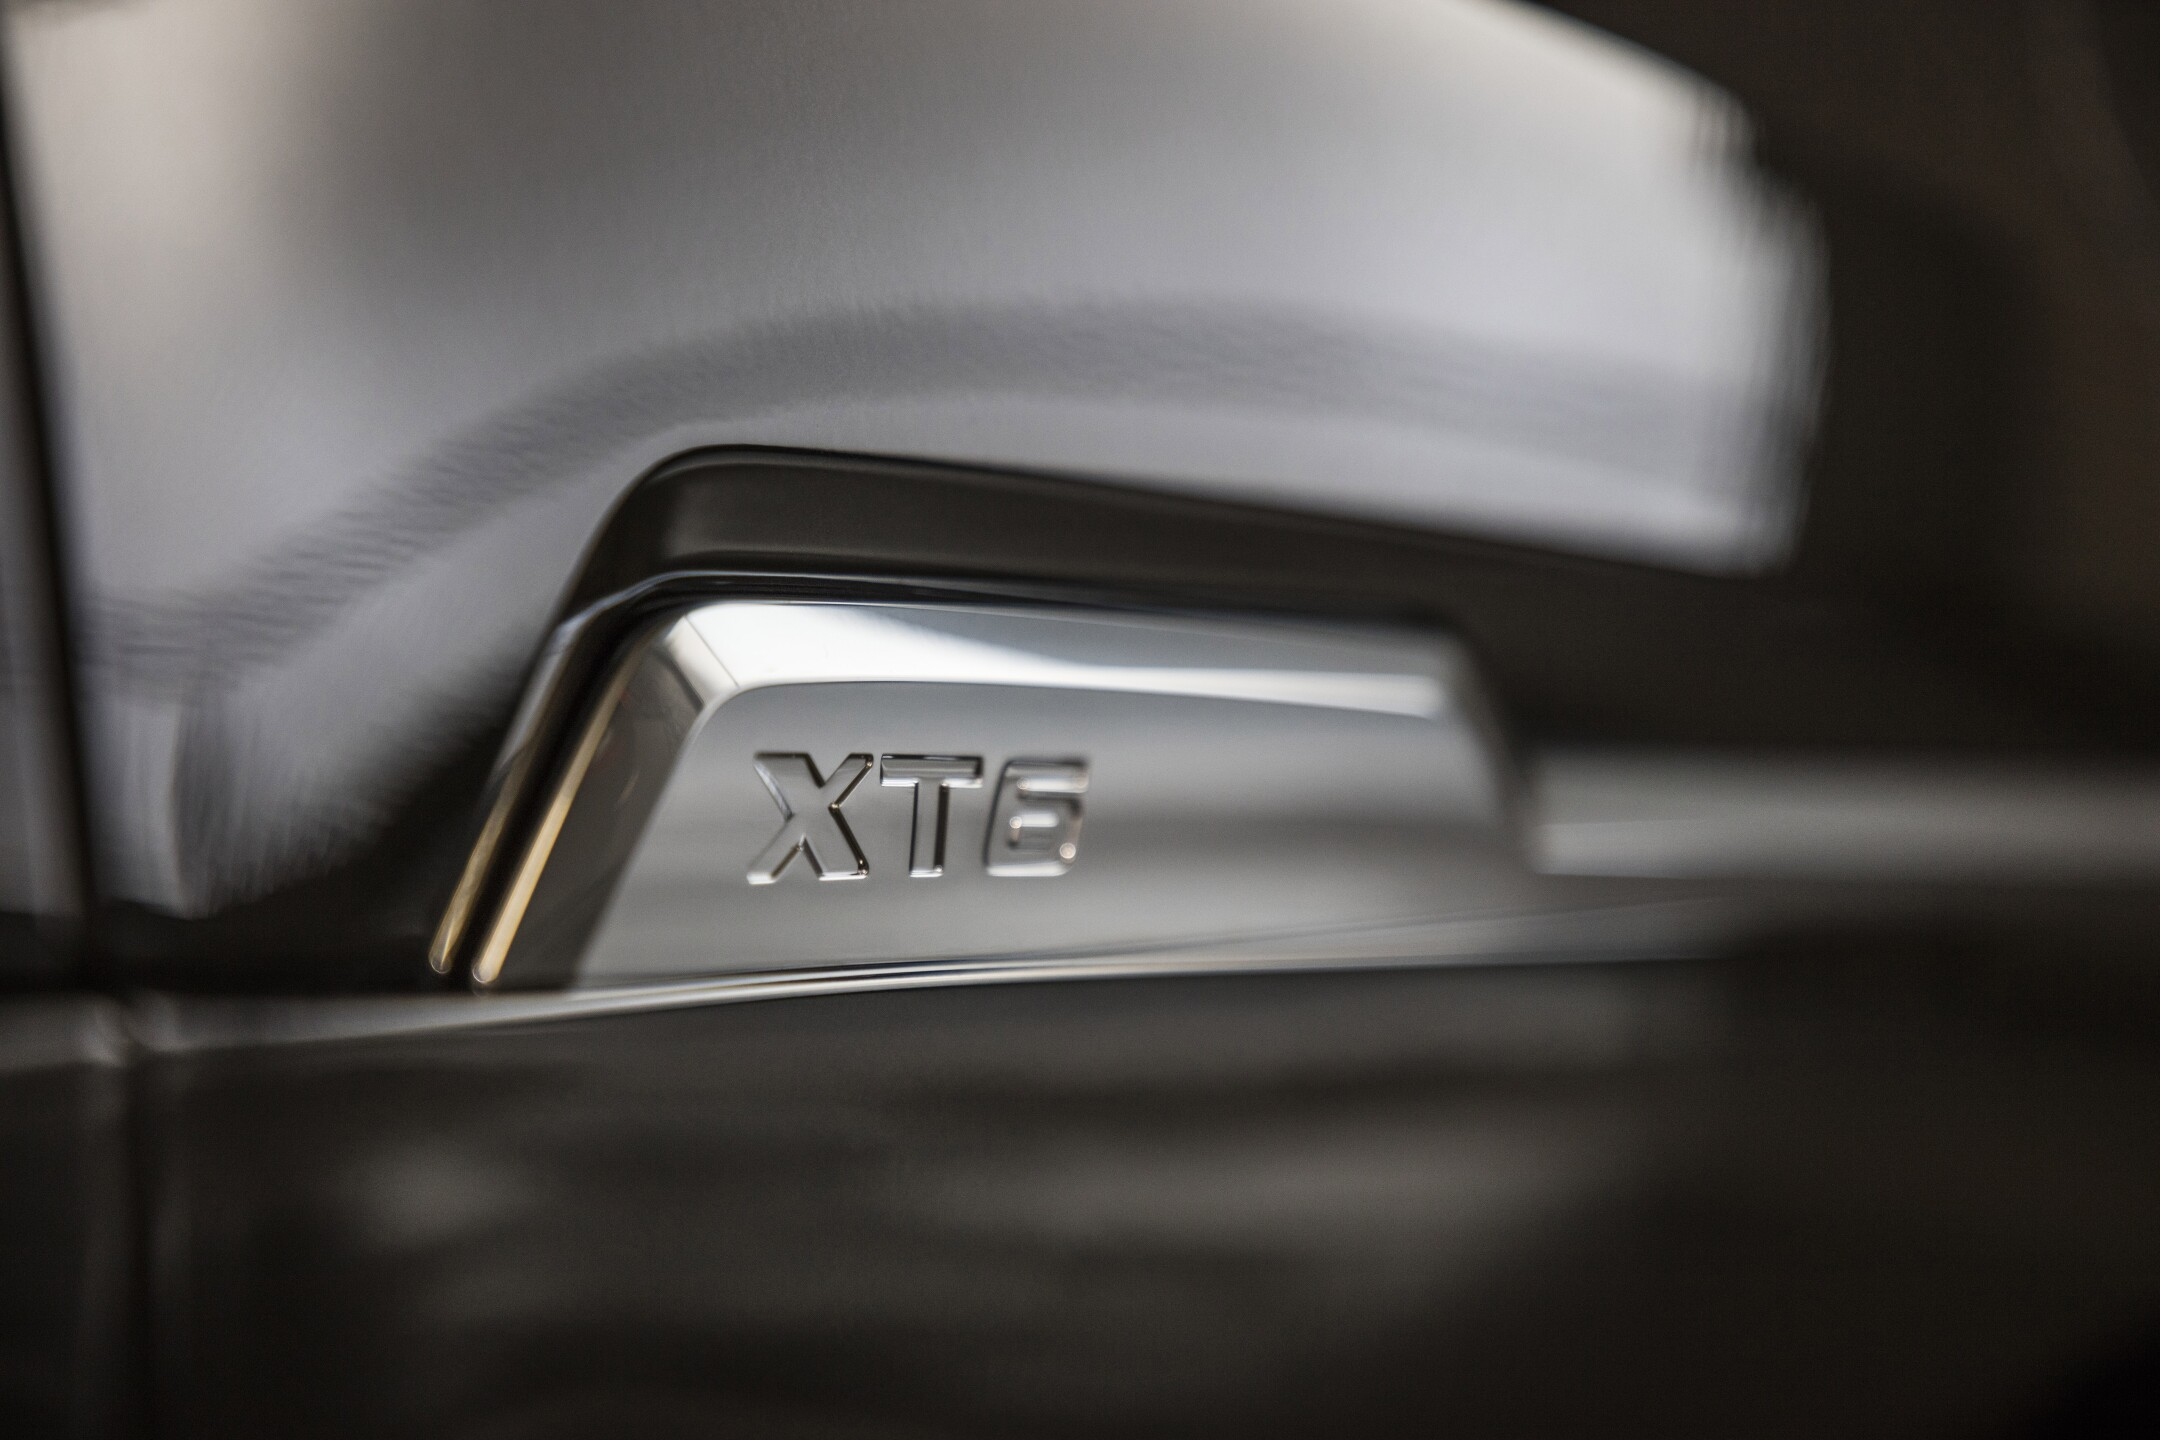 The first-ever Cadillac XT6 Premium Luxury model provides an ele